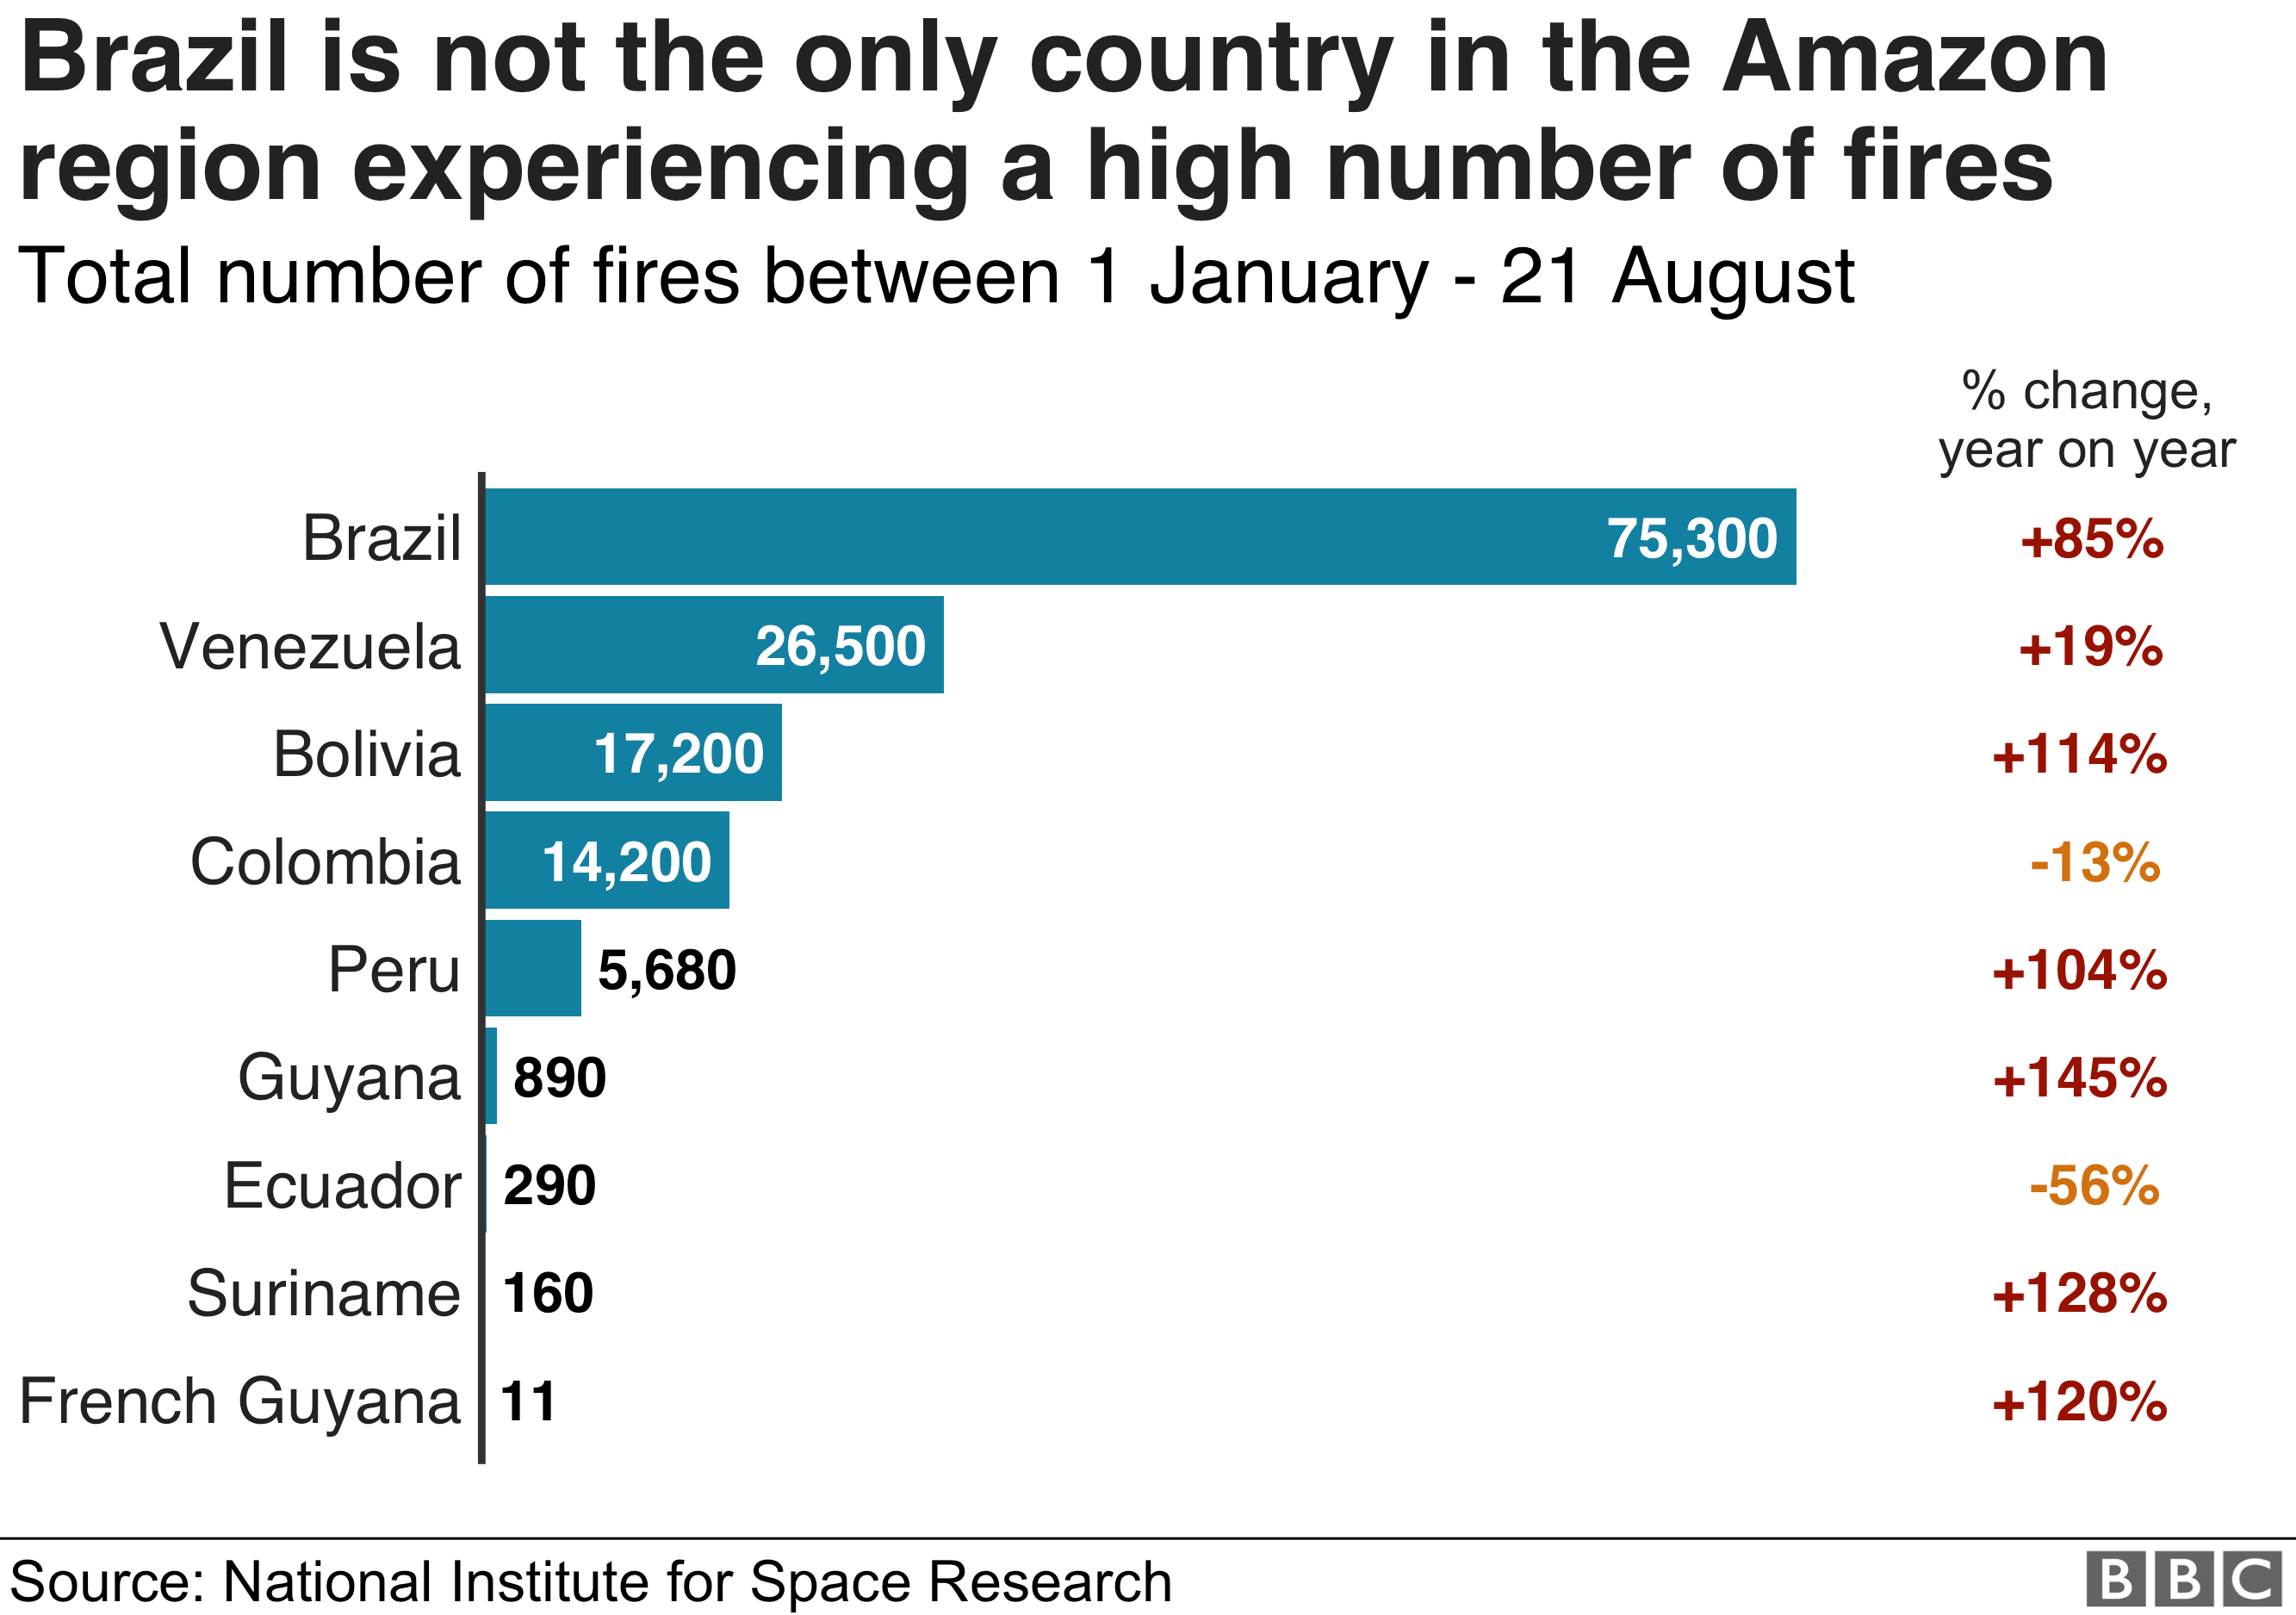 Chart showing the number of fires in other countries in the Amazon region